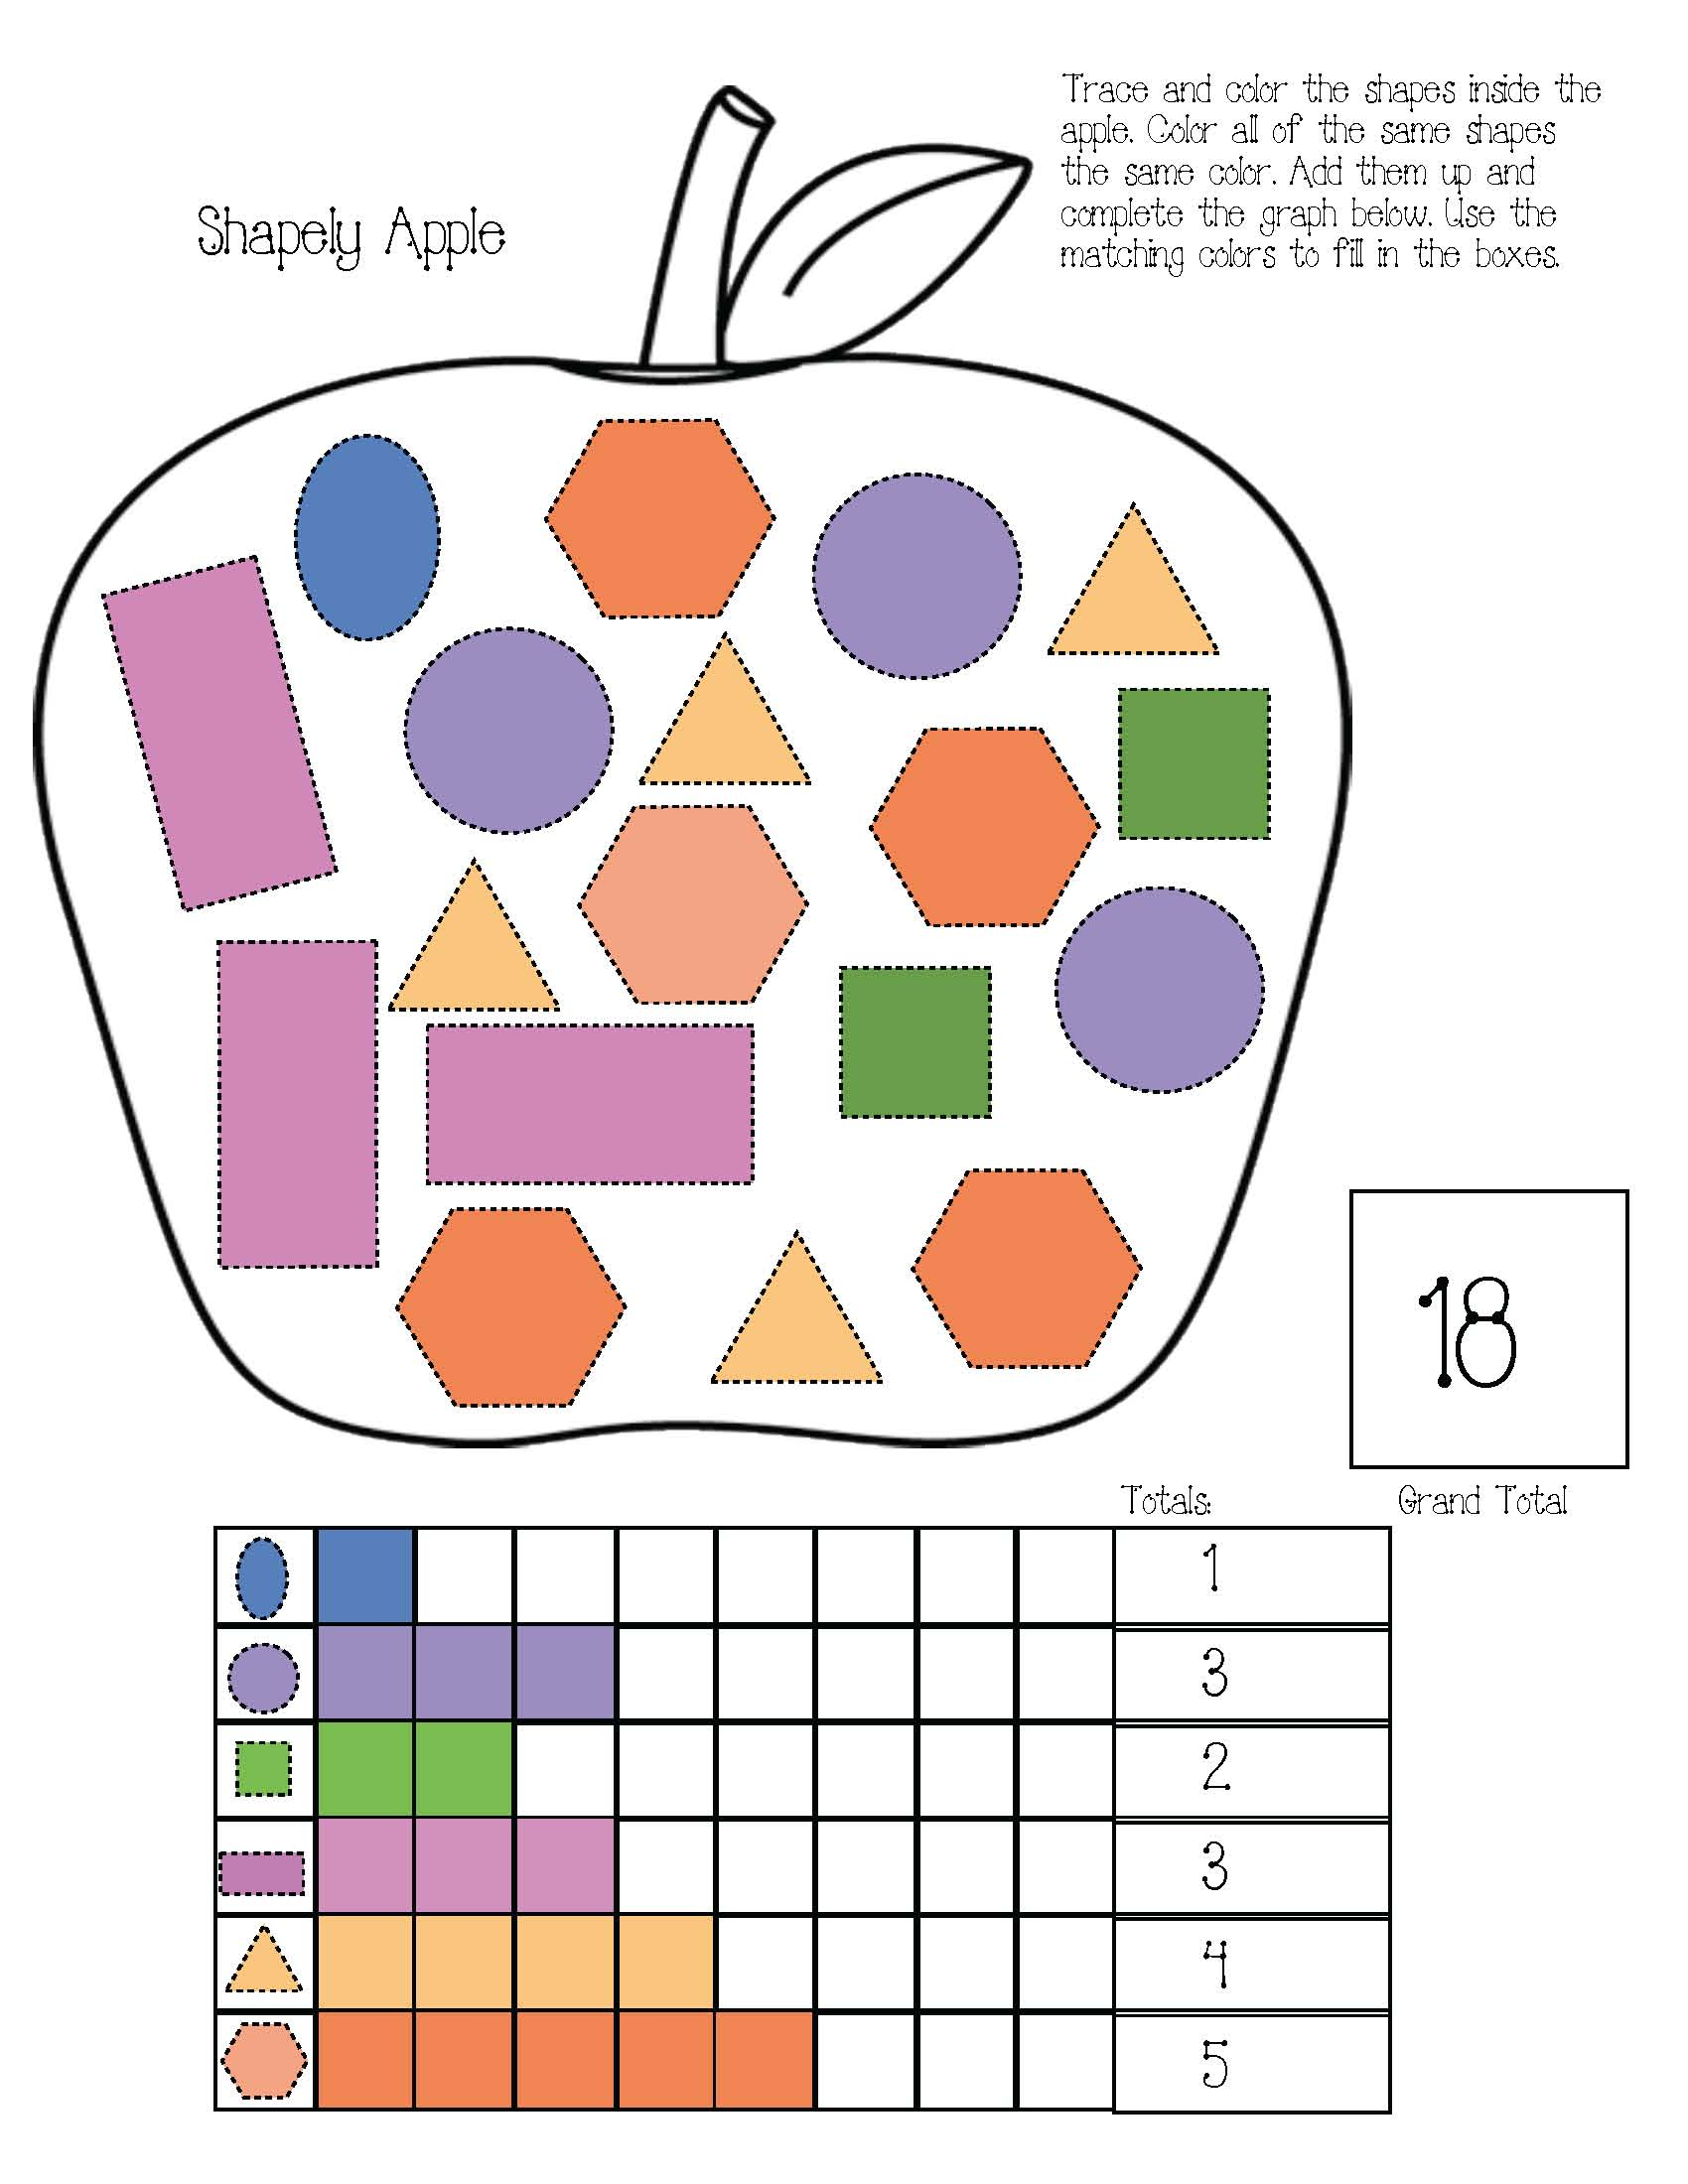 apple activities, spider activities, leaf activities, pumpkin activities, graphing activities, pumpkin graph, apple graph, spider graph, shape graph, shape activities, hexagon activities, shape lessons, table top lessons for fall, free common core for kindergarten, free common core for 1st grade, 1.MD.4